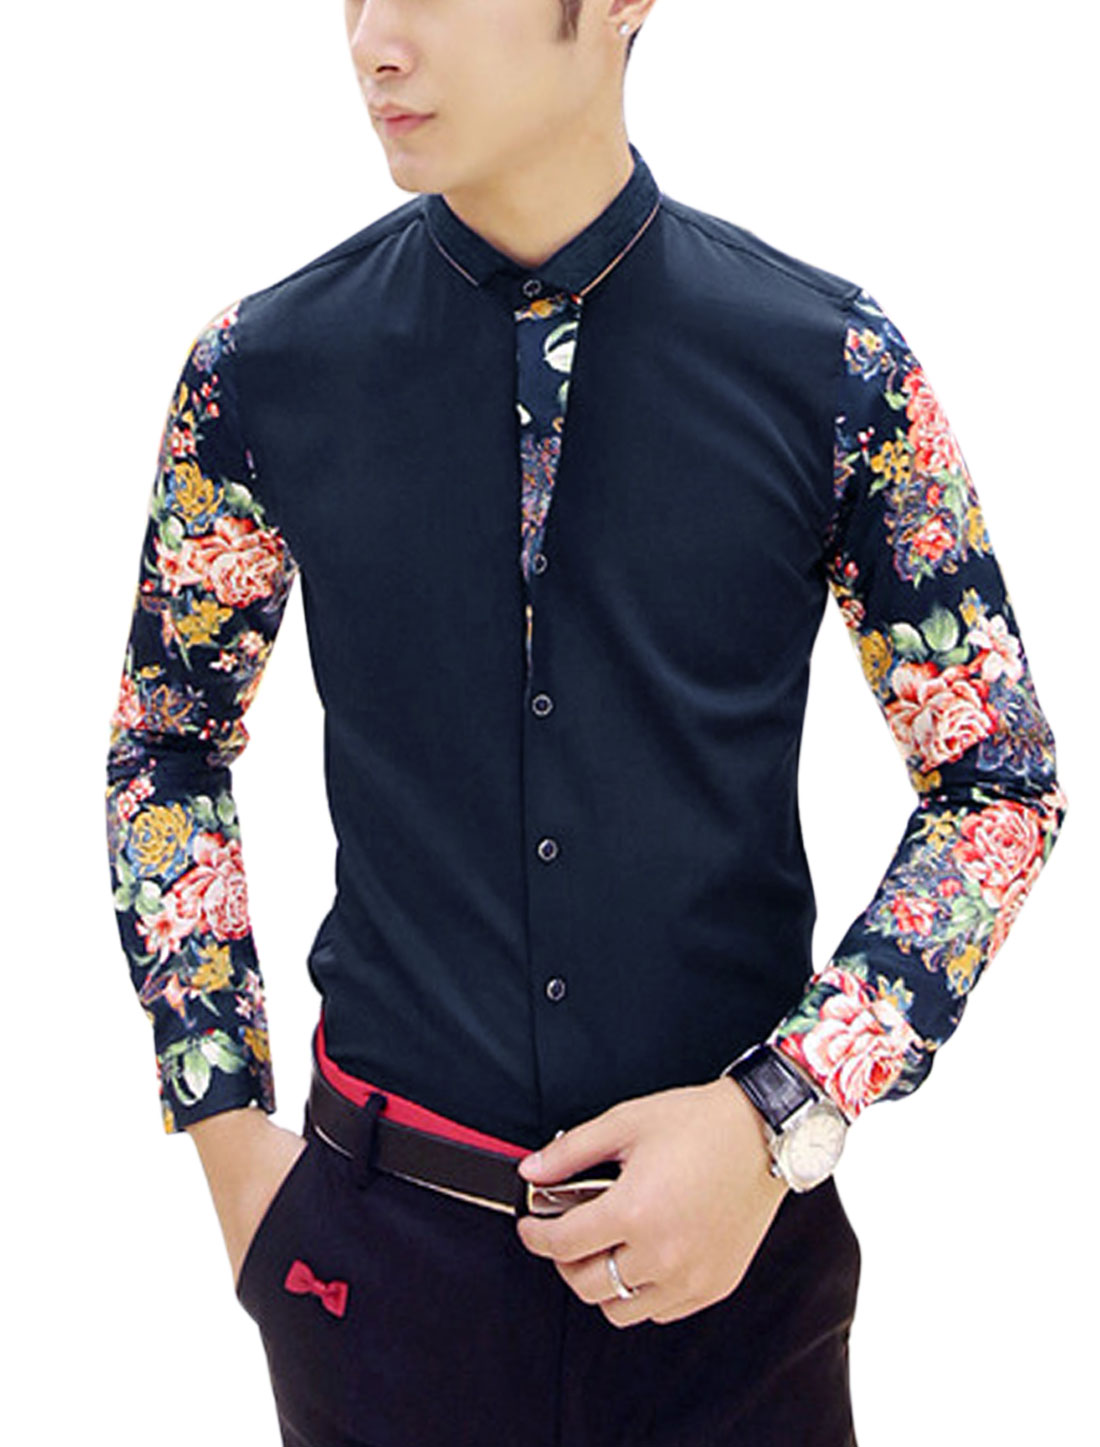 Man Blue Long Sleeves Point Collar Button Closure Contrast Floral Prints Shirt S